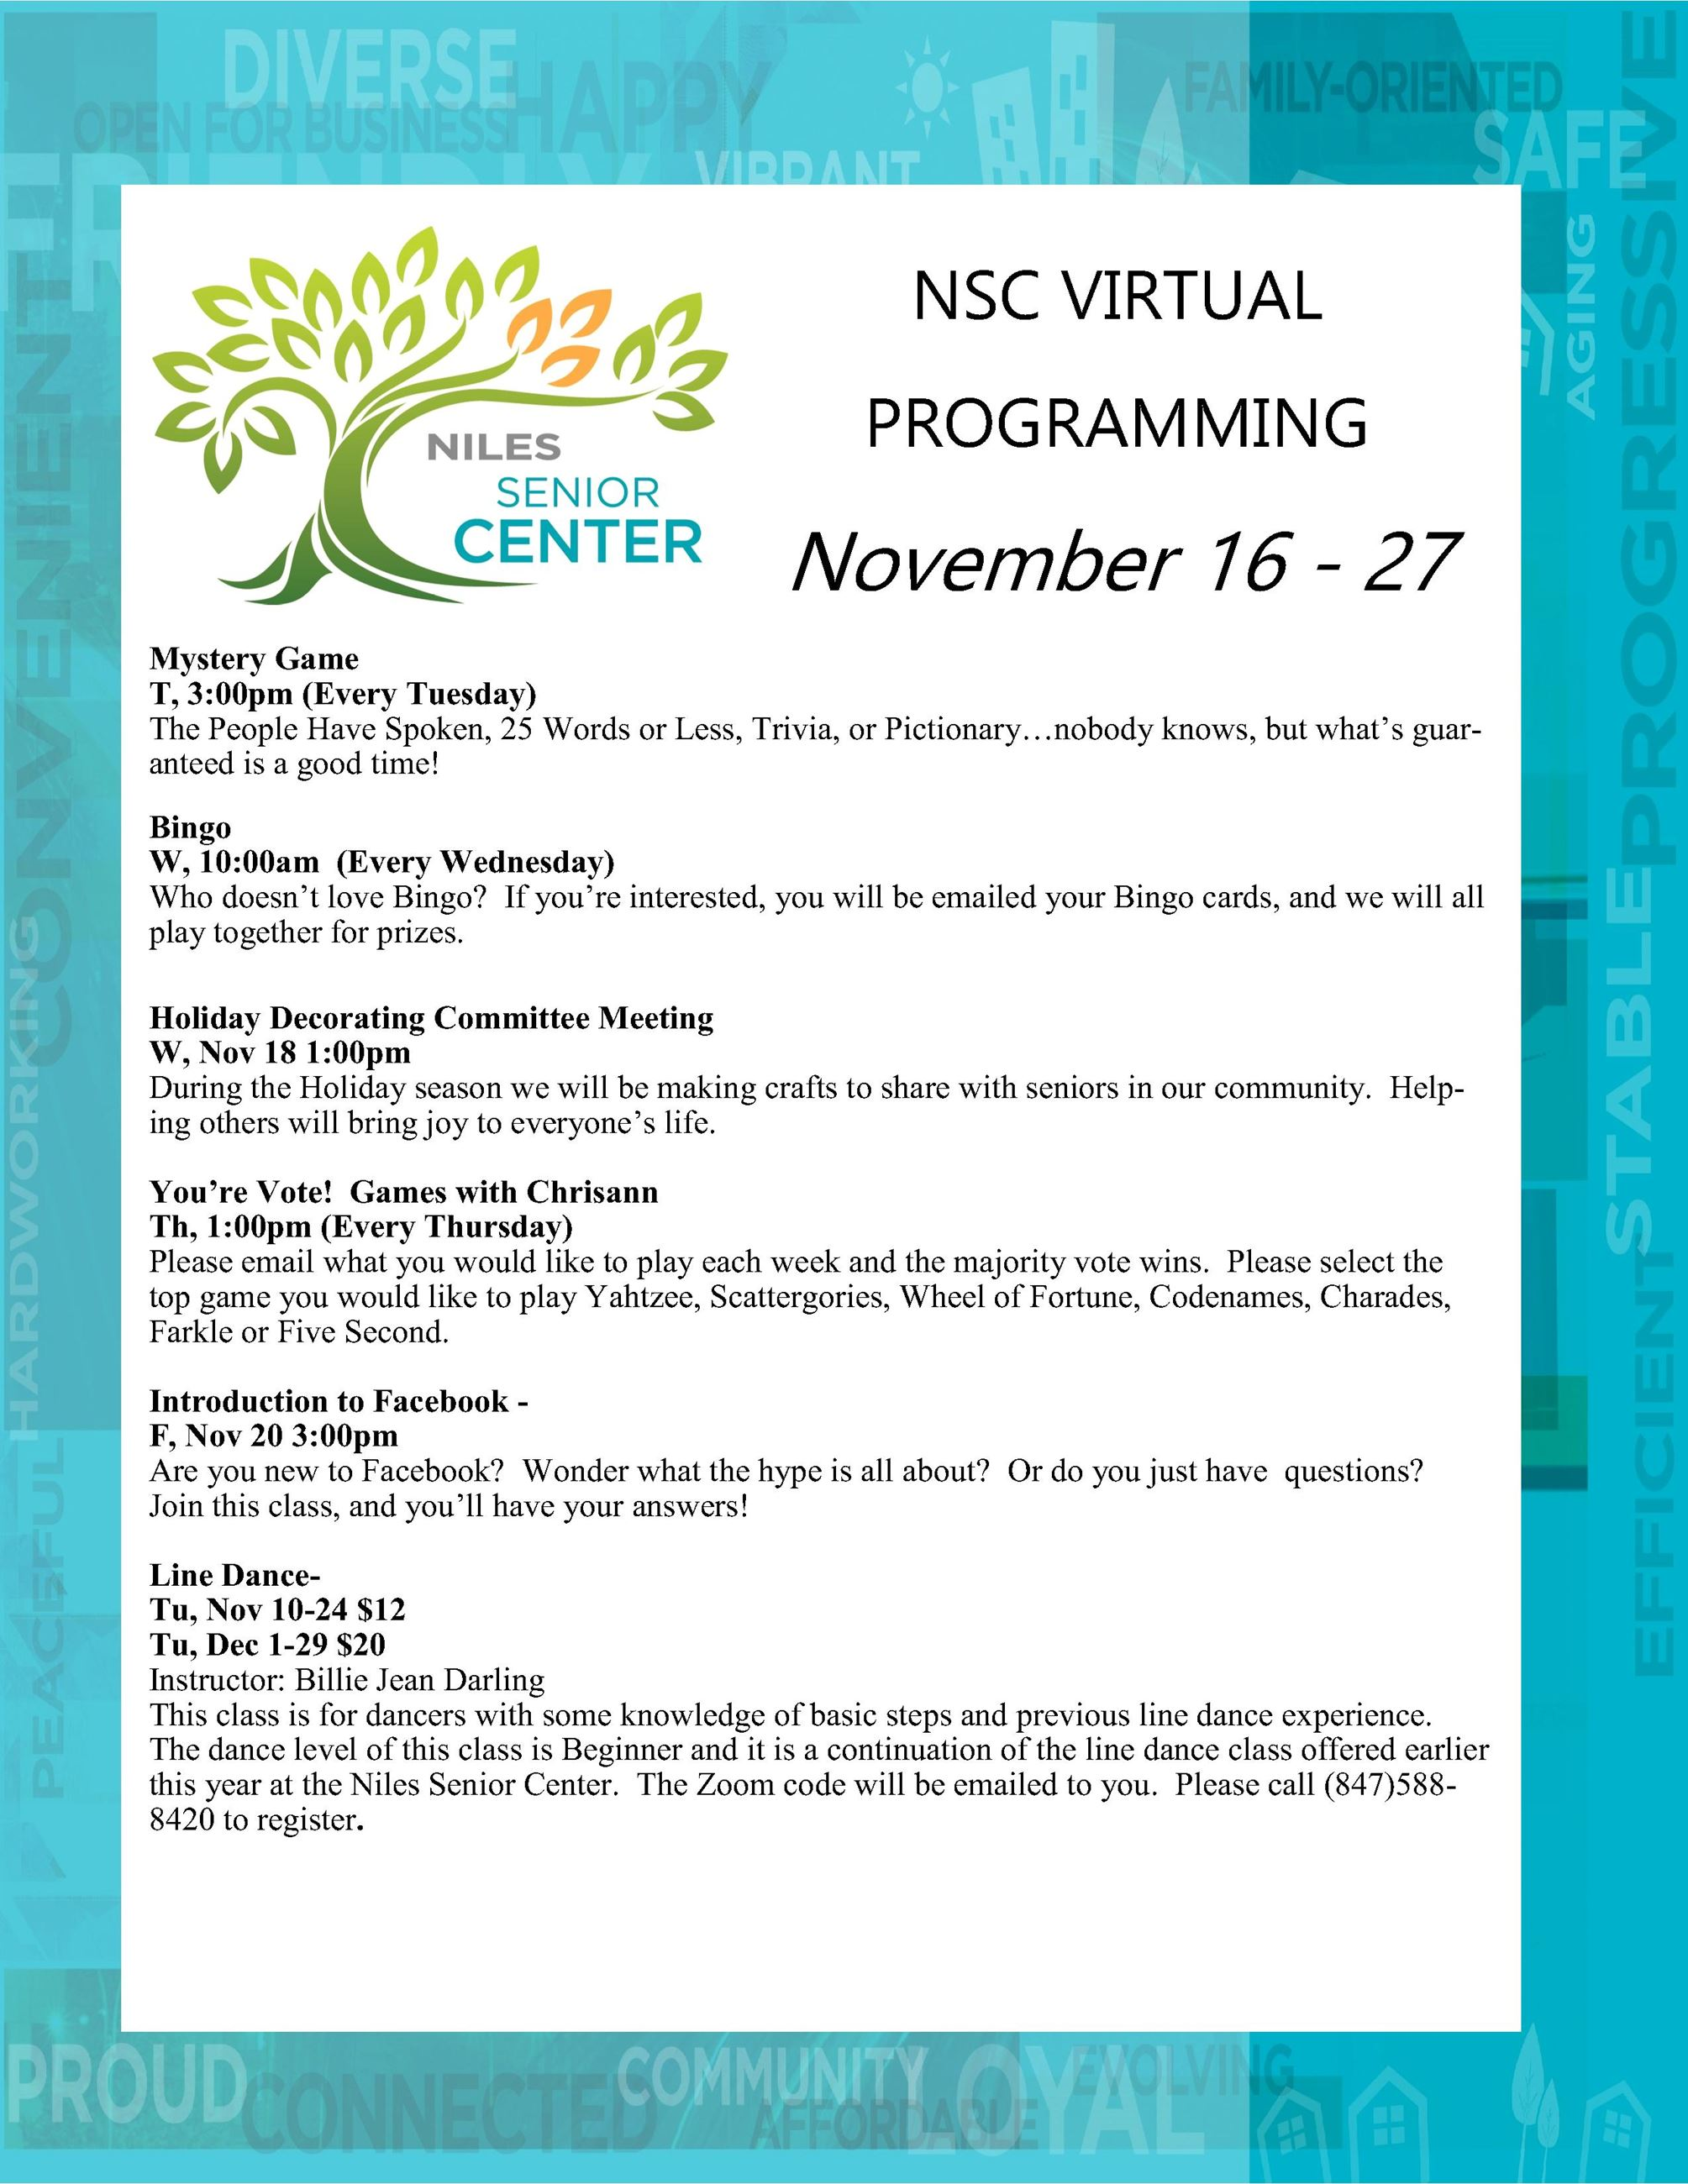 NSC Virtual Programming November 16 - 27  Virtual Program Guide_2